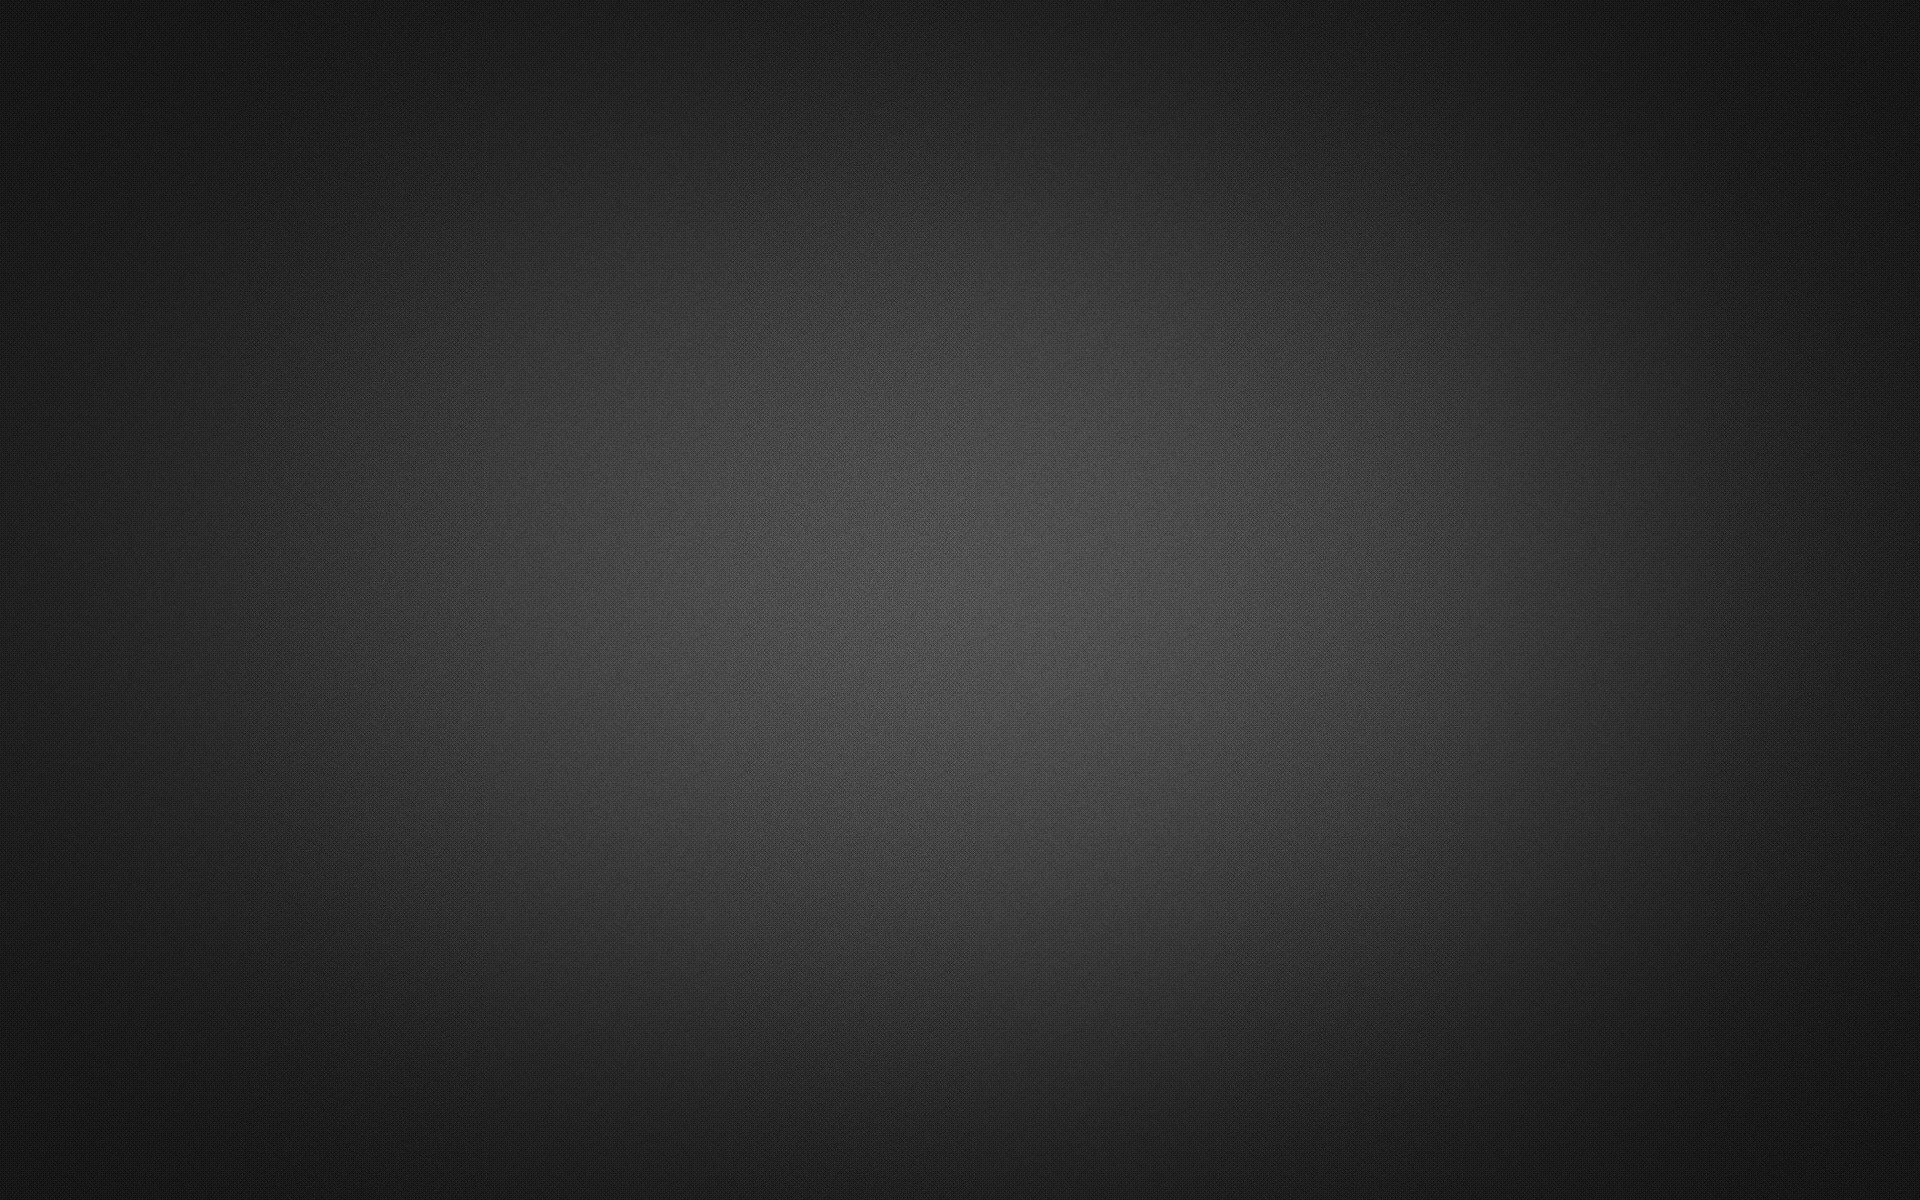 Black And Gray Backgrounds 70 Images